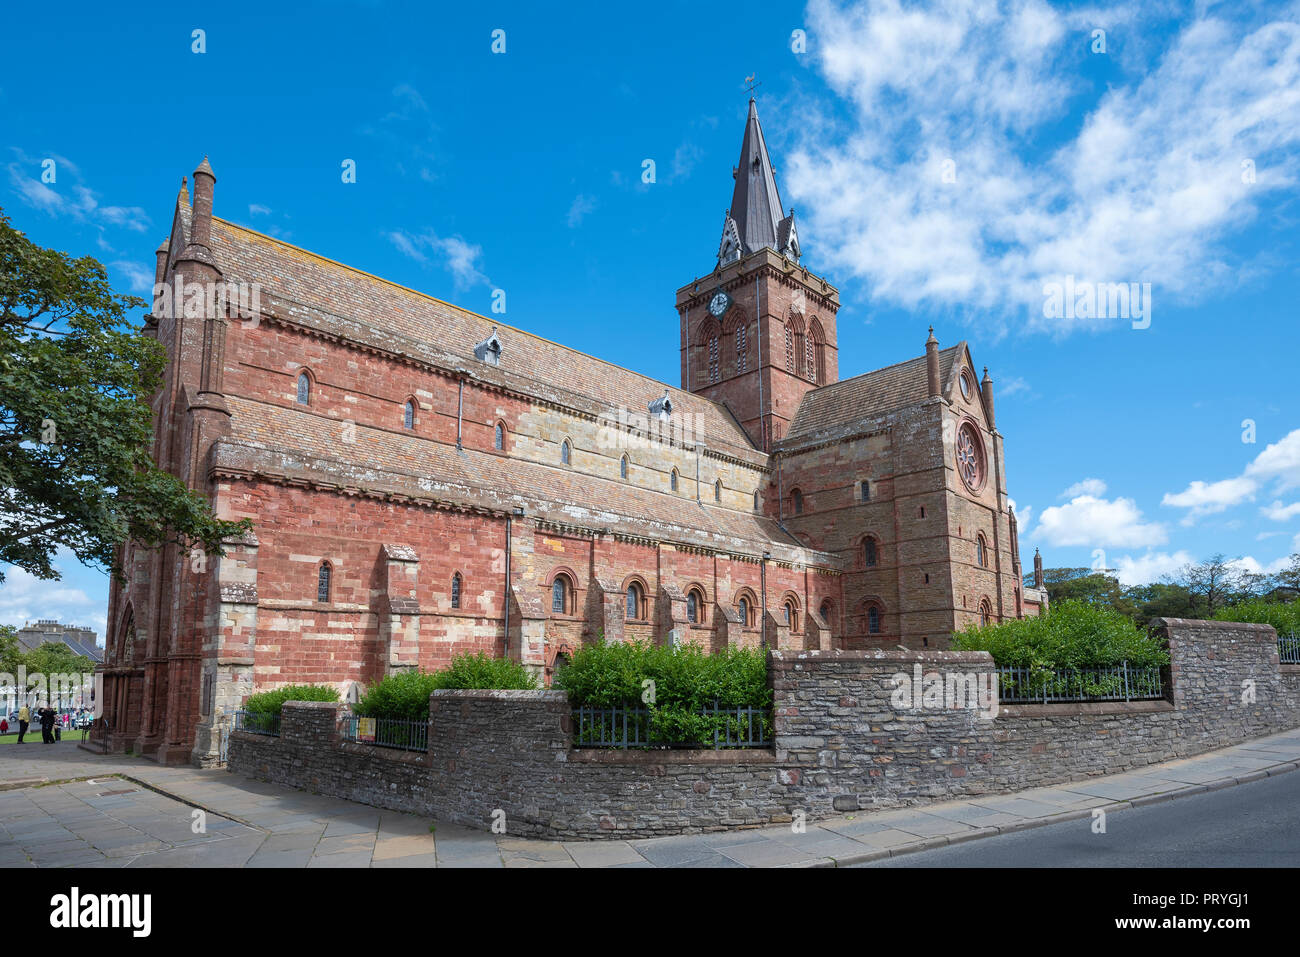 Romanesque-Norman Cathedral St. Magnus, 12th century, Kirkwall, Mainland, Orkney Islands, Scotland, Great Britain - Stock Image